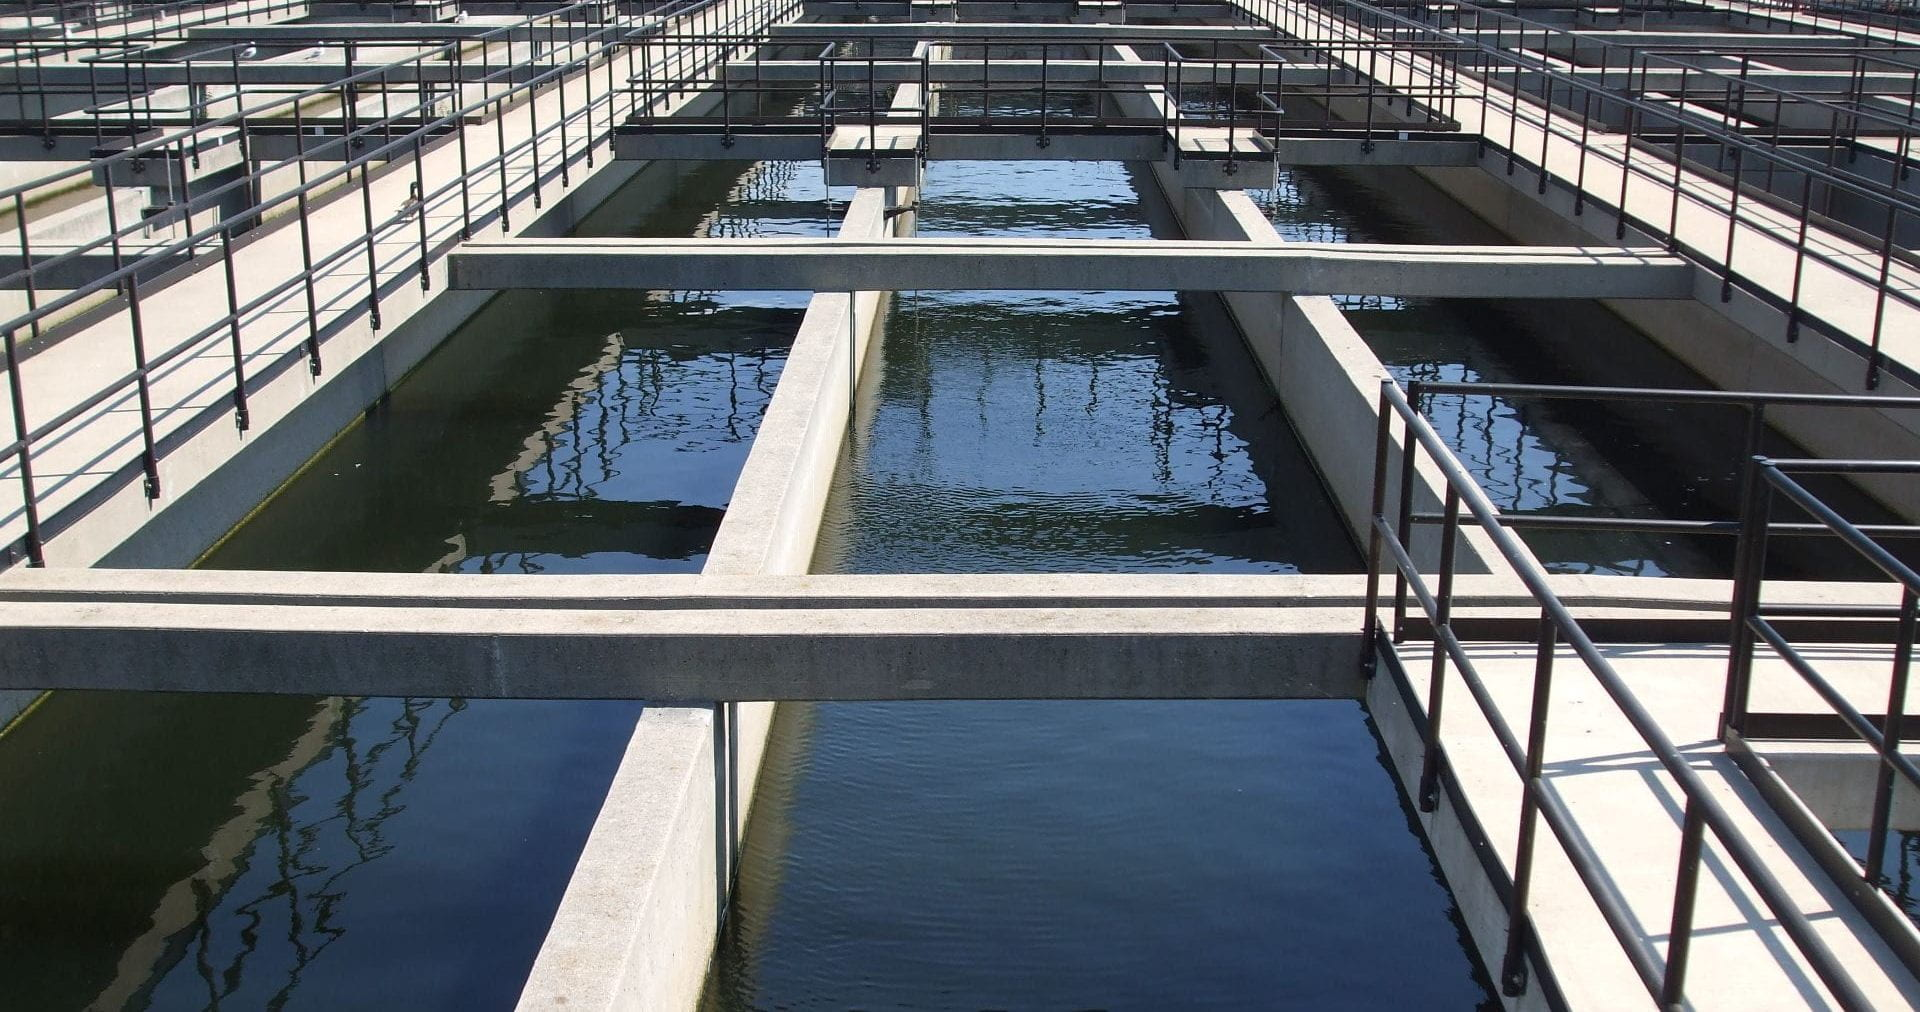 Wastewater treatment facility, Milwaukee